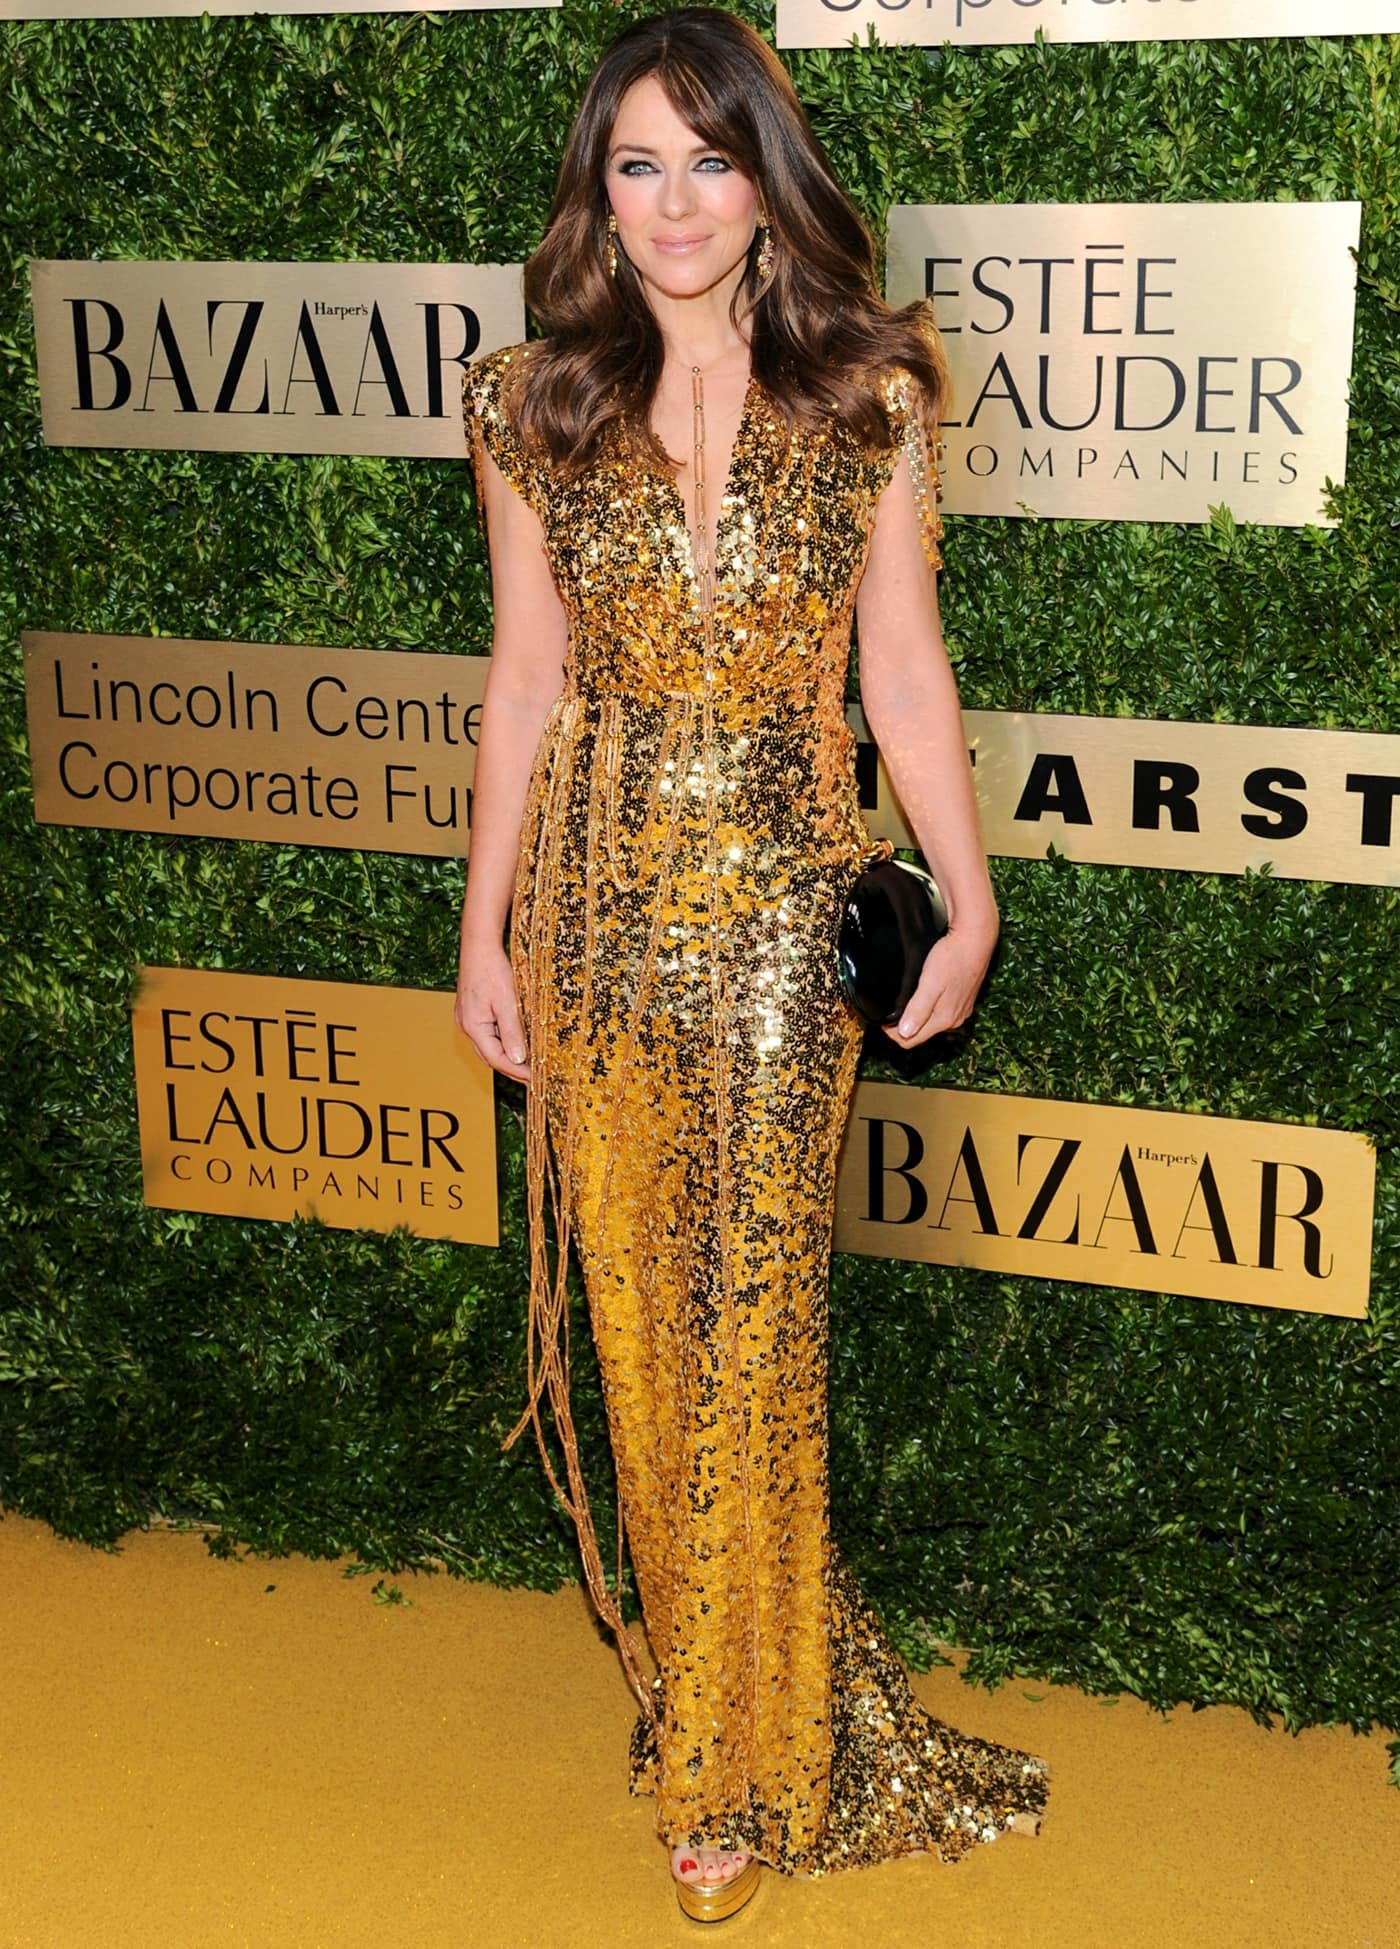 Elizabeth Hurley attends the Lincoln Center Corporate Fashion Gala in a glamorous gold-sequin dress